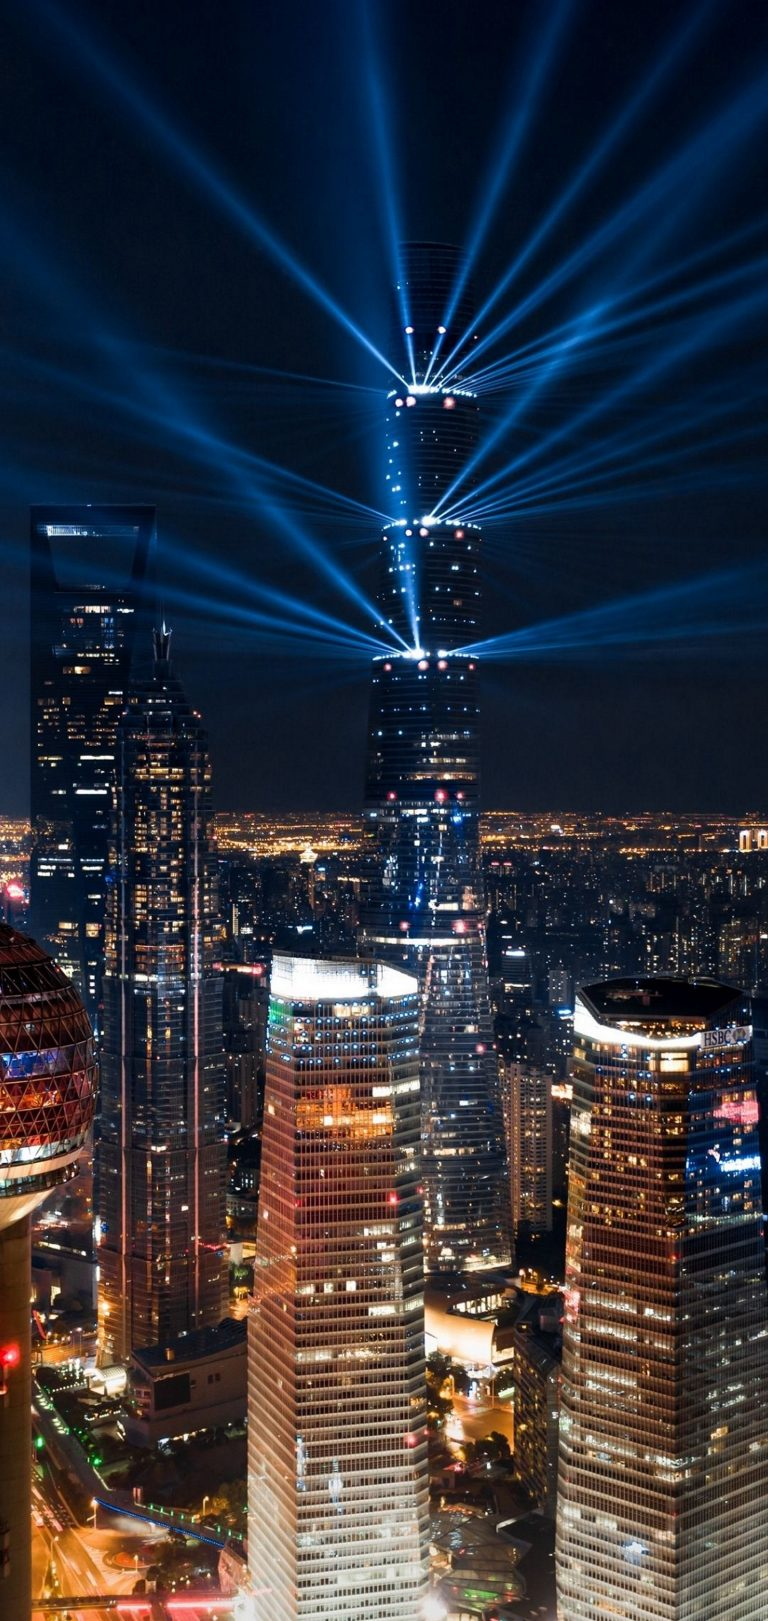 City Lights Aerial View Wallpaper 1440x3040 768x1621